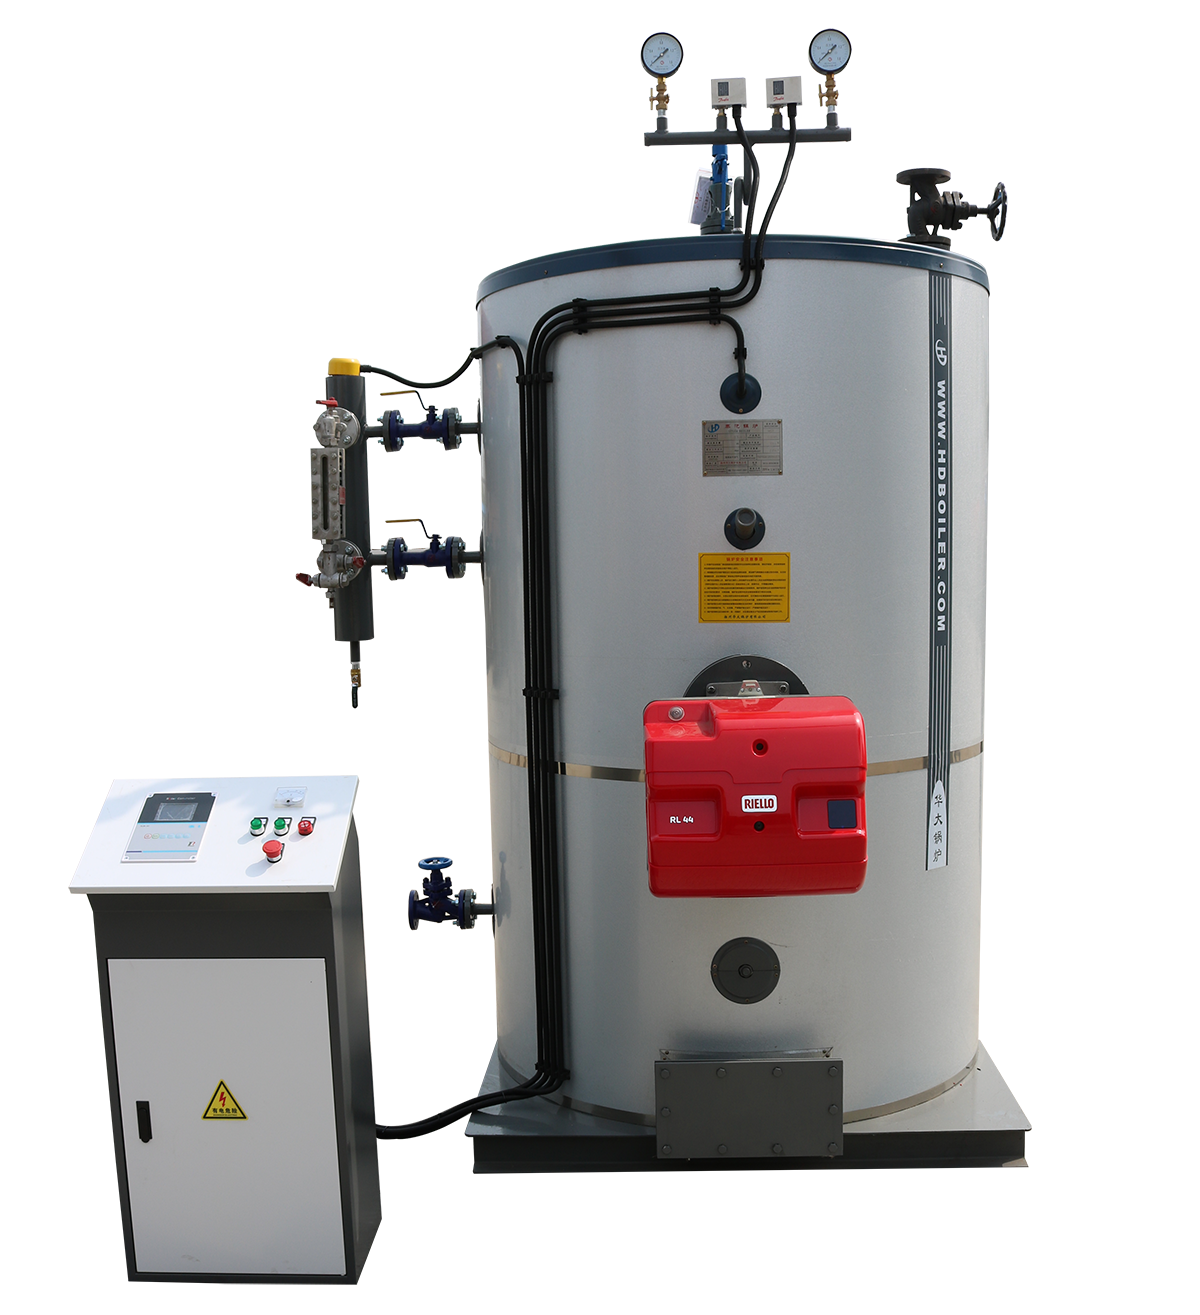 What are the advantages of using electric and thermal oil boilers?